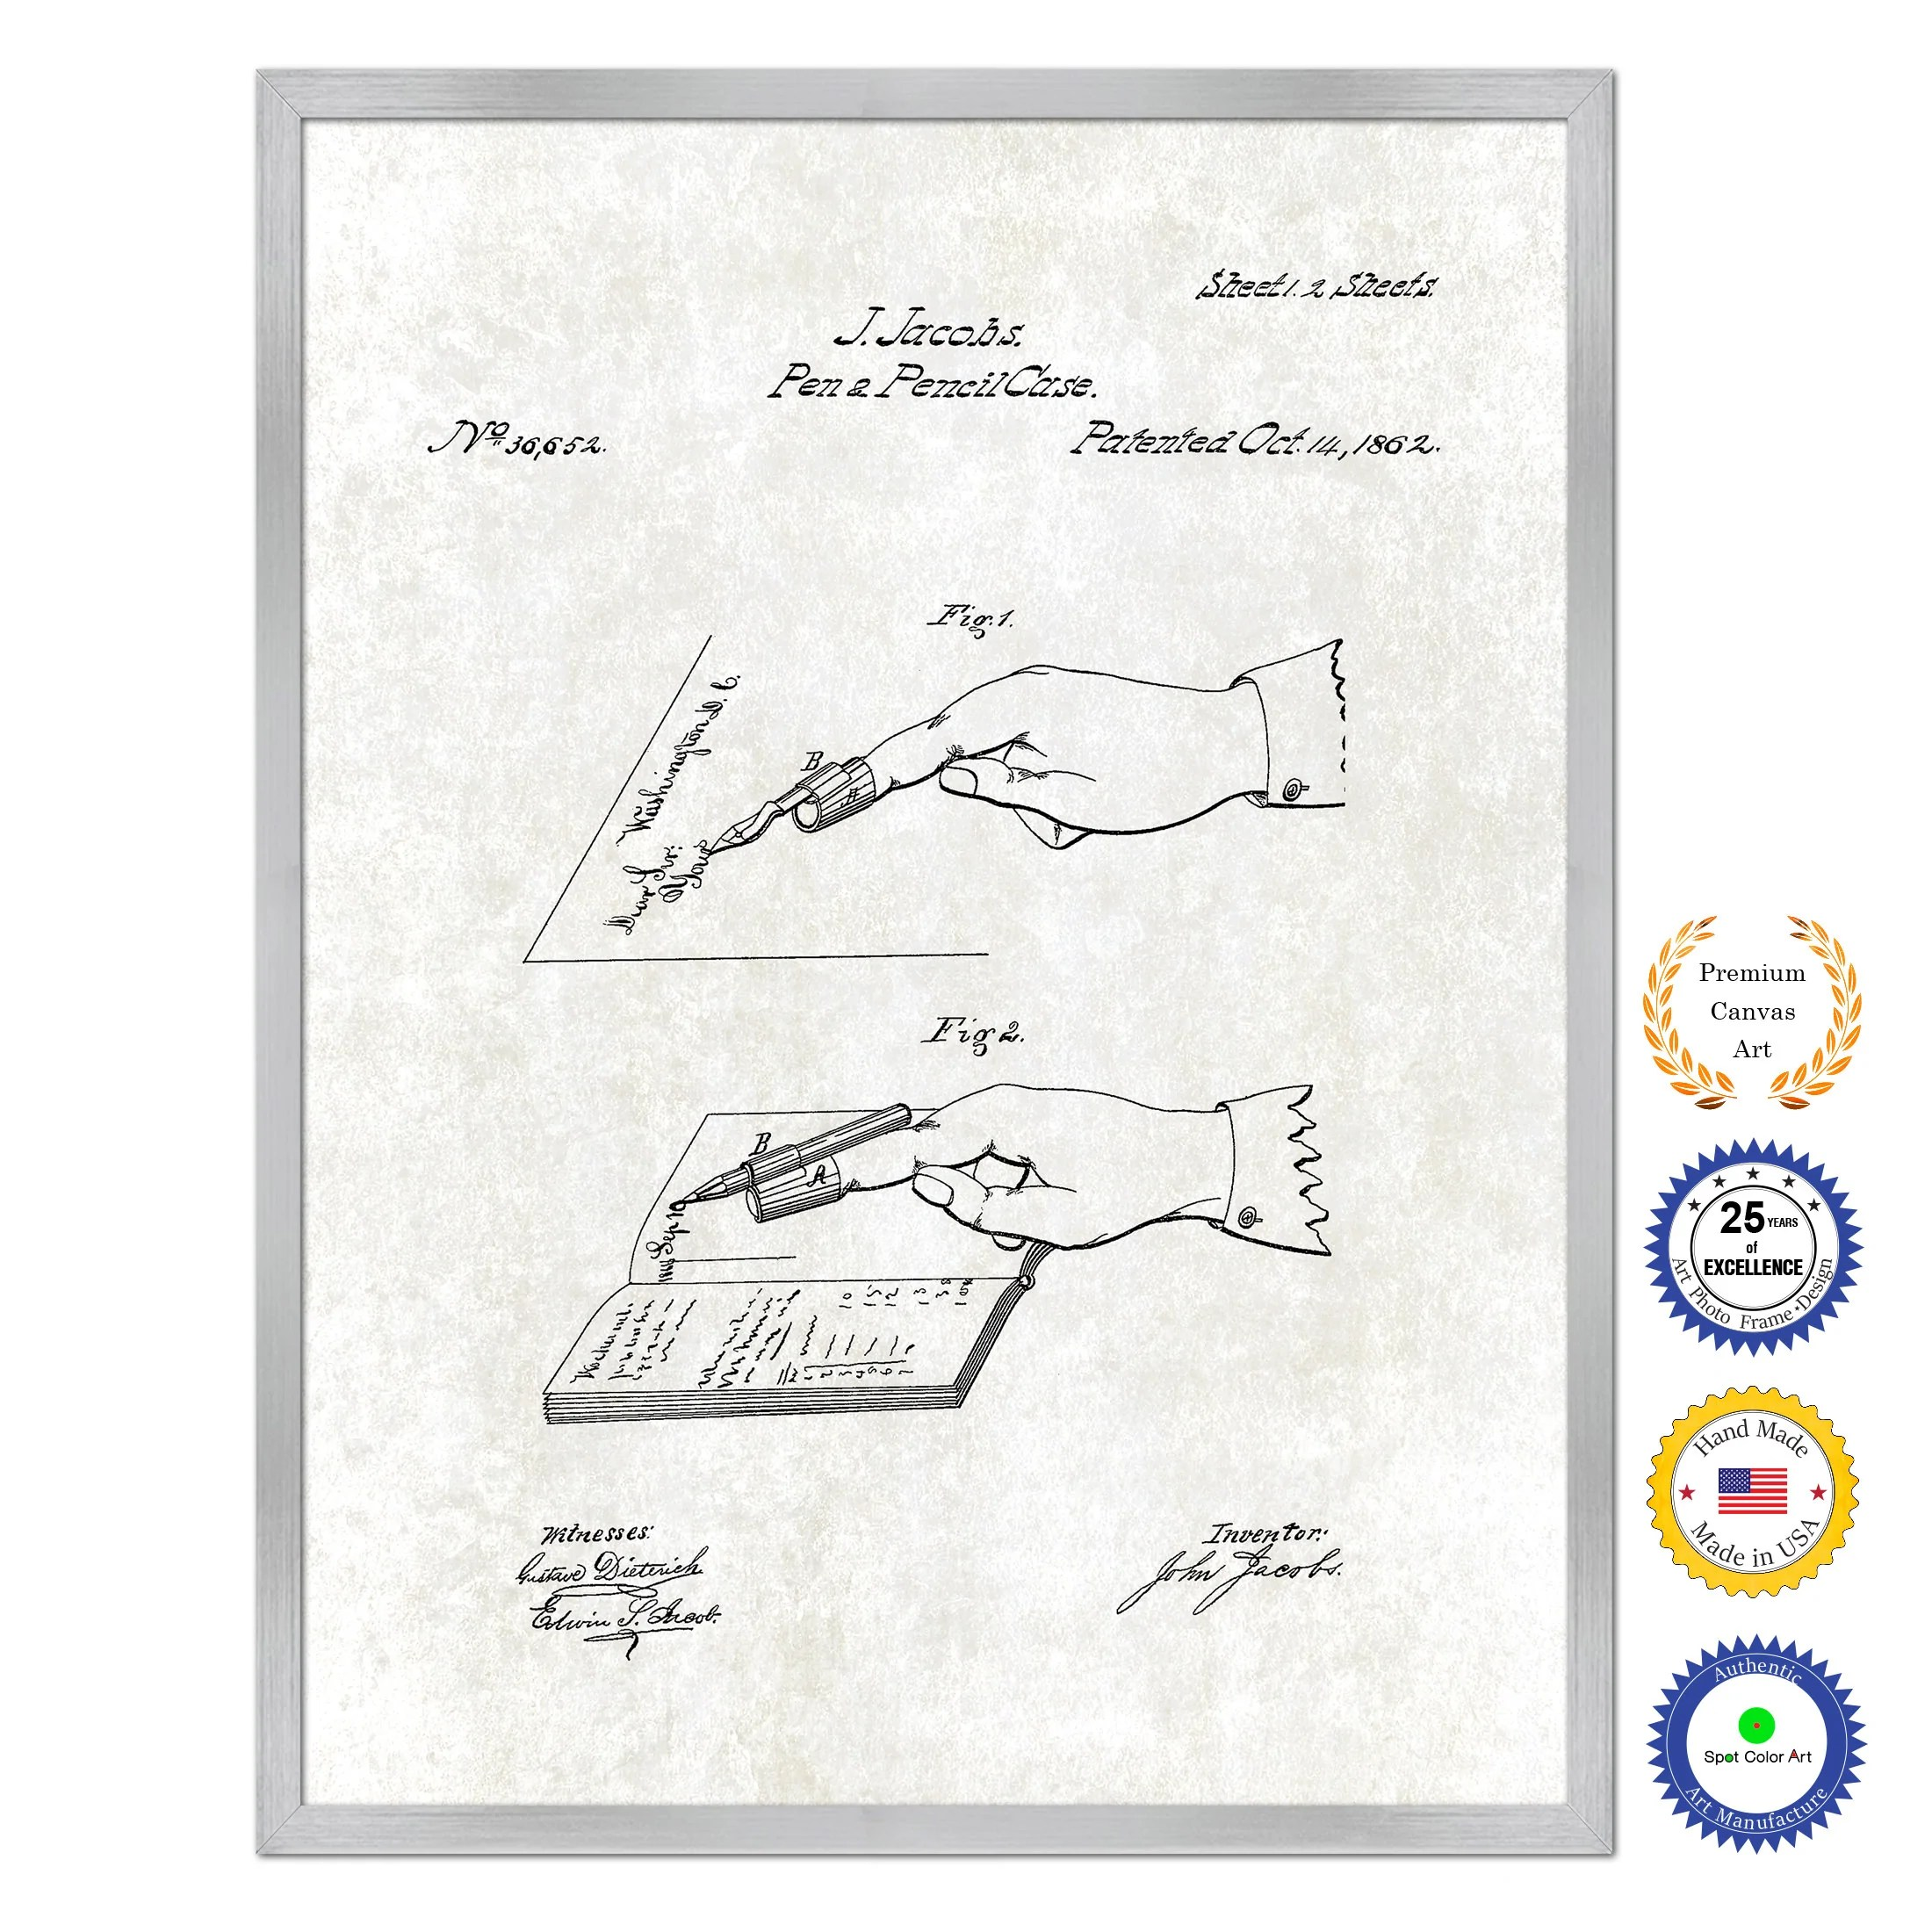 1862 pen and pencil case vintage patent artwork silverframed canvas print home office decor wall art spotcolorart [ 2200 x 2200 Pixel ]